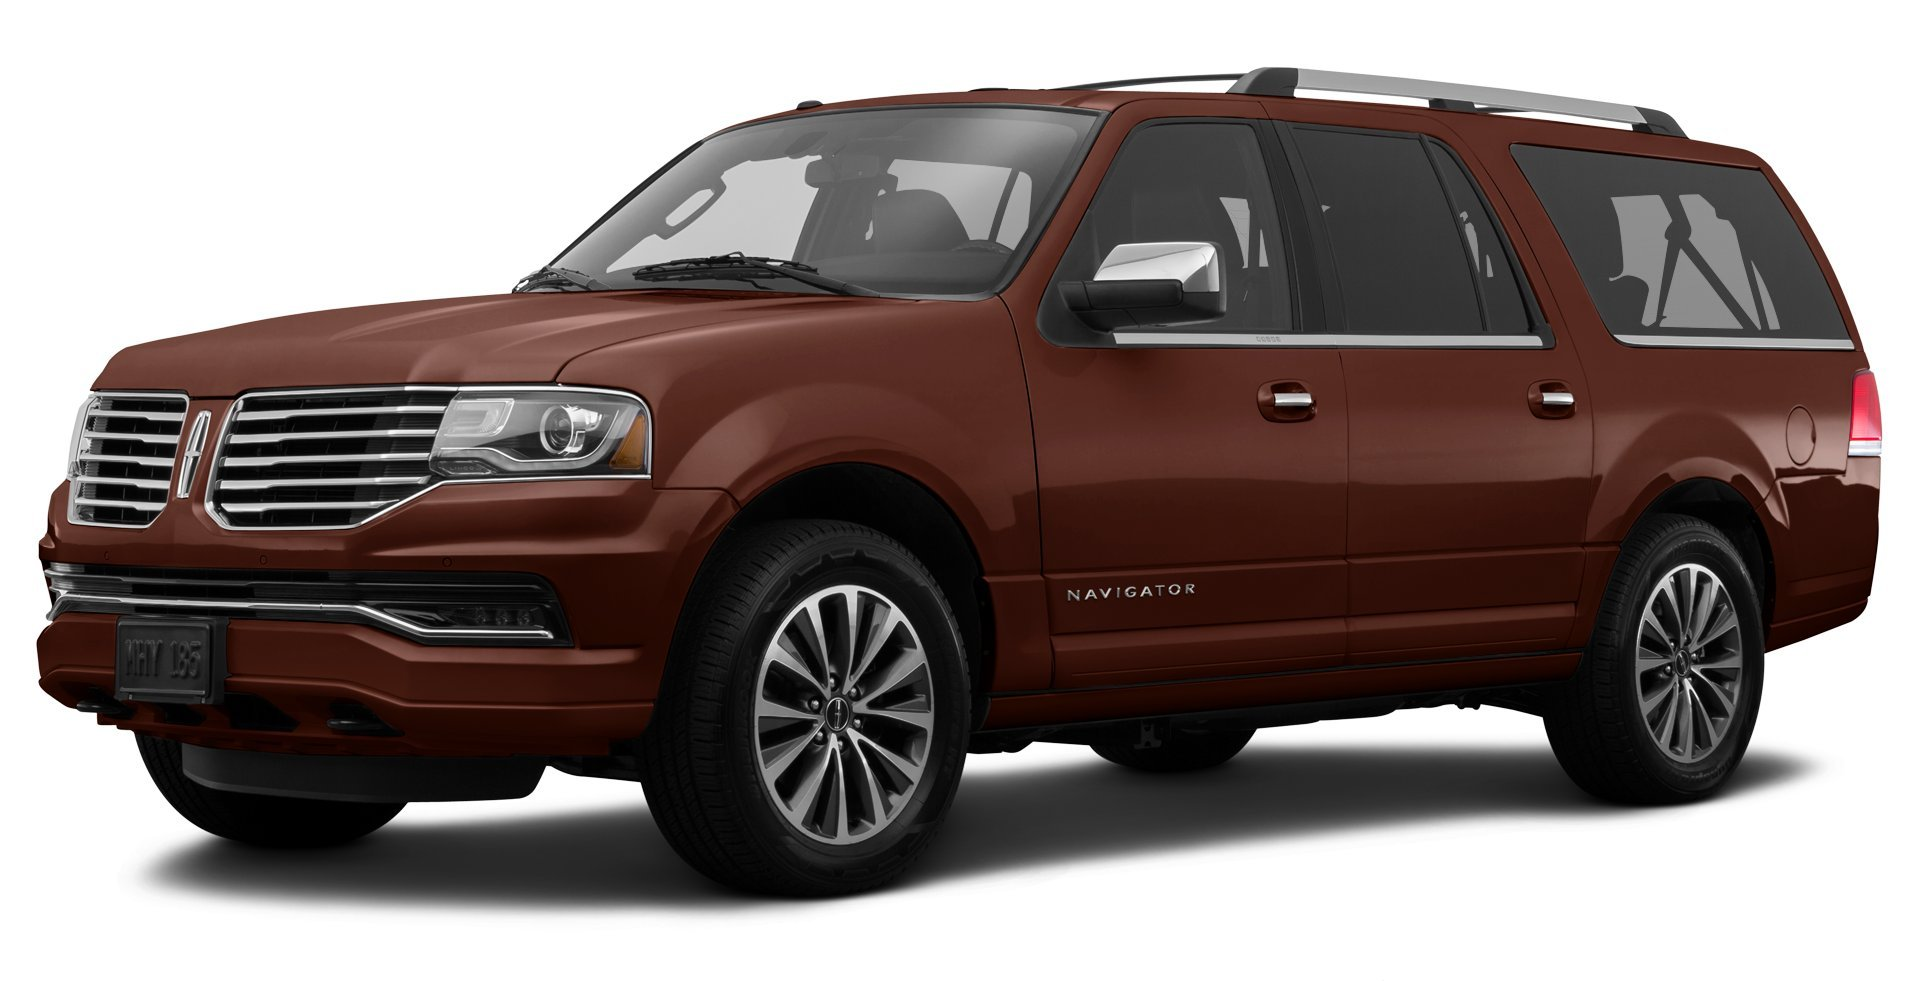 2015 Dodge Durango Reviews Images And Specs Vehicles Murdered Out 1955 Cadillac Lincoln Navigator 2 Wheel Drive 4 Door